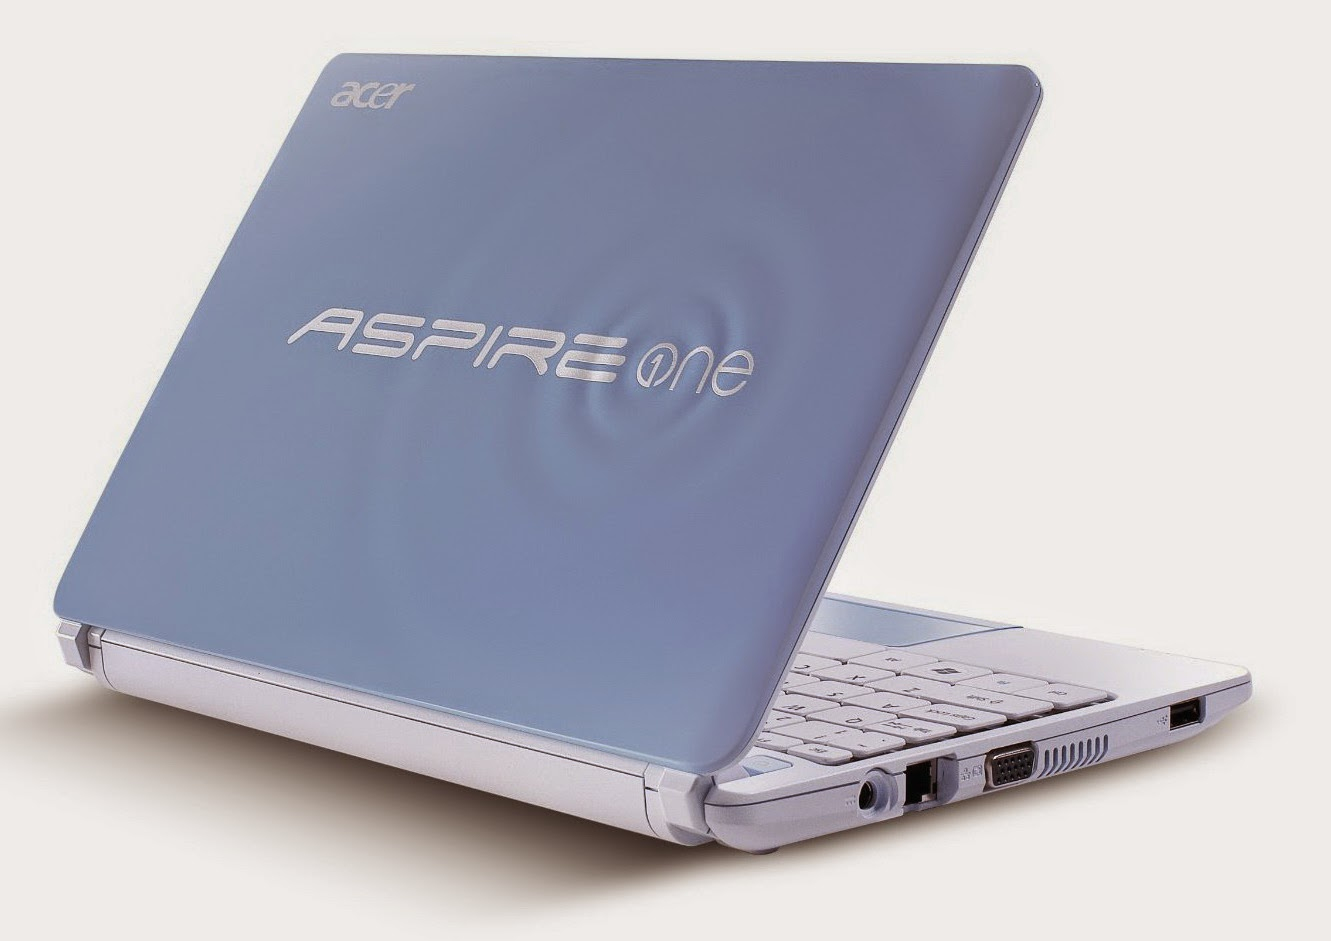 electrica how to disassemble acer aspire one happy 2 laptop rh electoworld999 blogspot com Change Aspire One Wallpaper Weight of Acer Aspire One